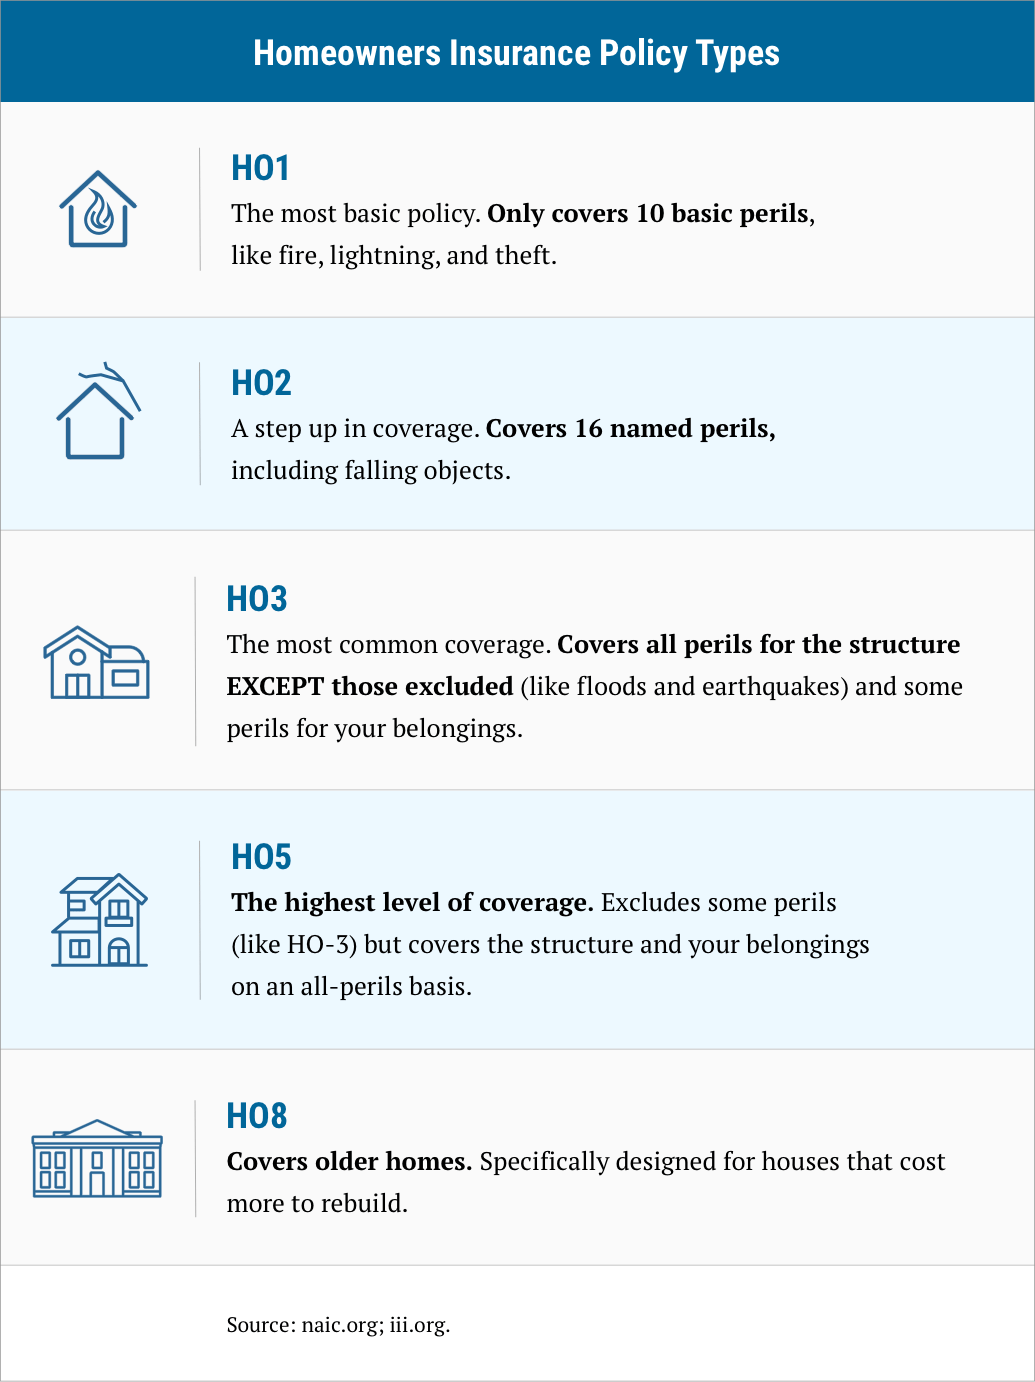 description of Homeowner policy types, from HO1 to HO8